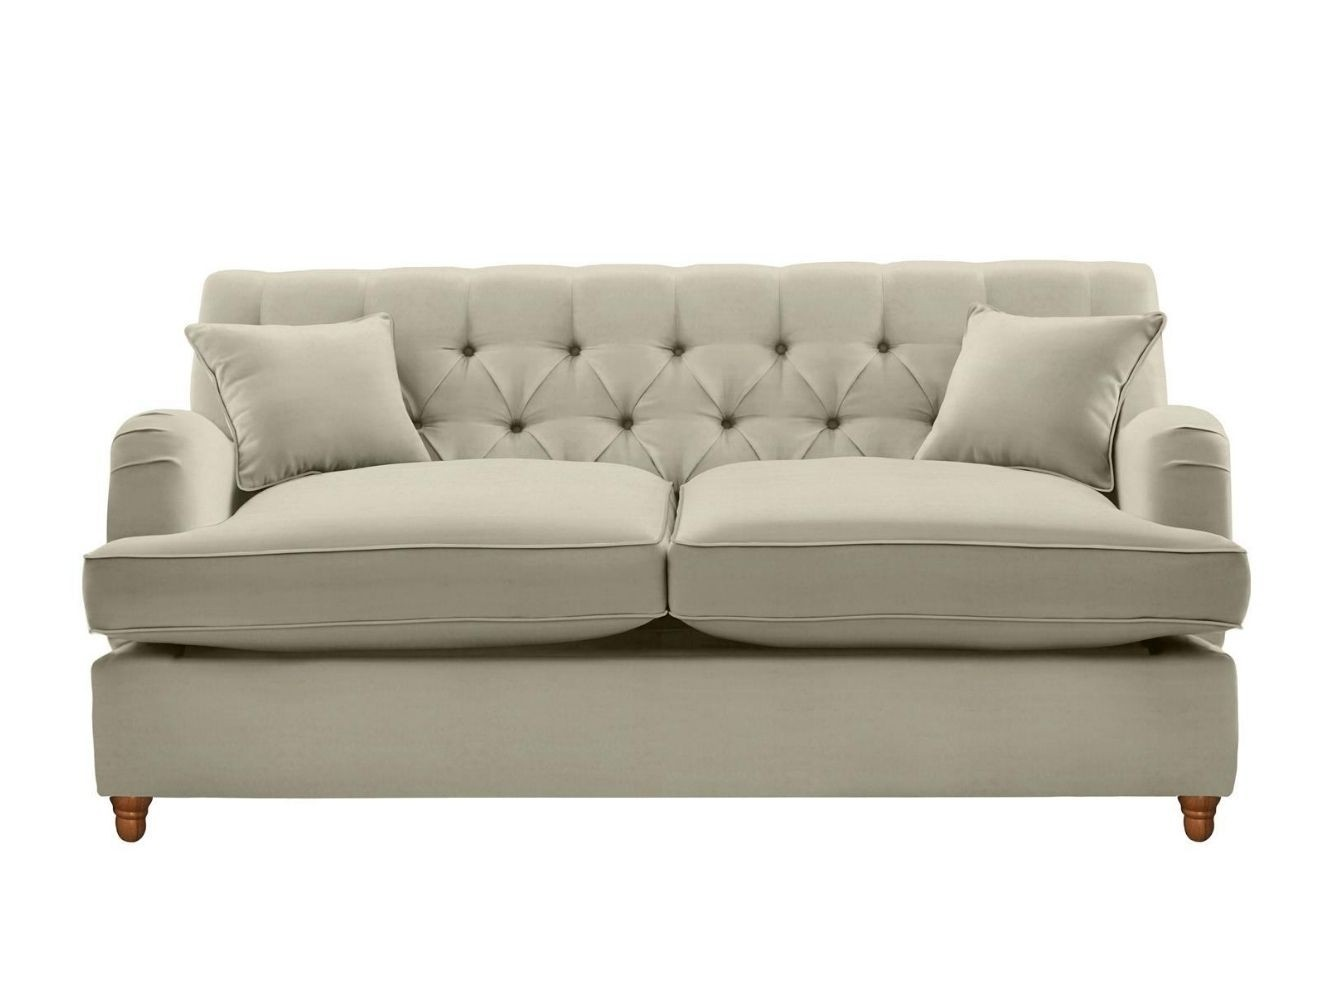 This is how I look in Stain Resistant Deep Velvet Fawn with feather-wrapped foam seat cushions